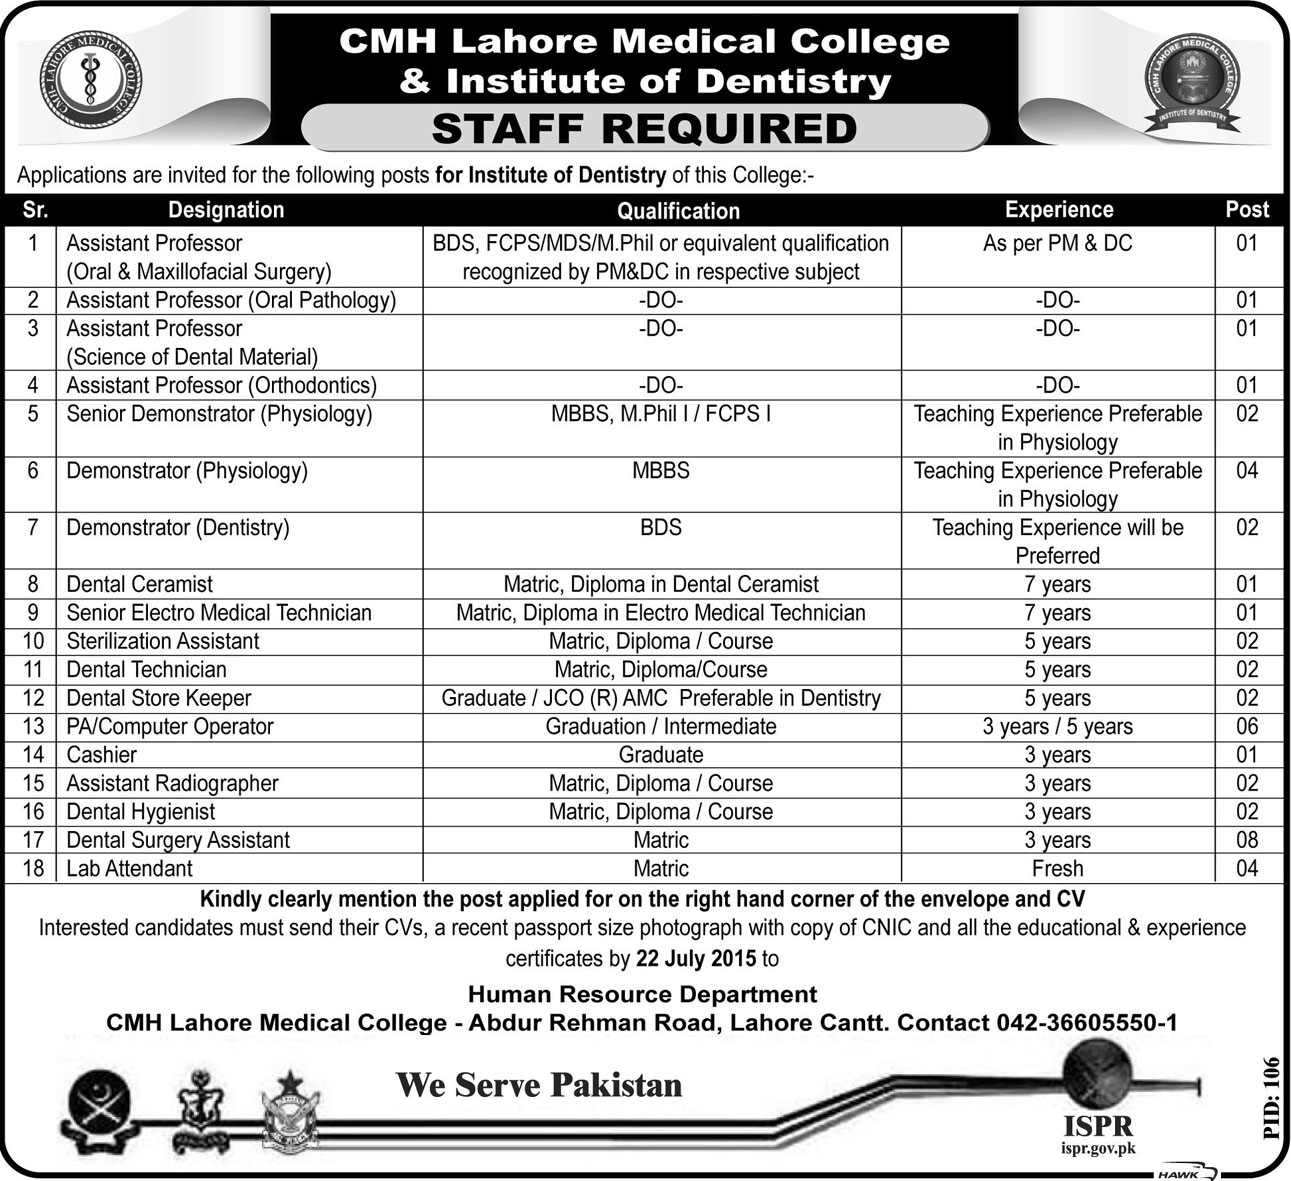 Staff Jobs At CMH Lahore Medical College & Institute Of Dentistry